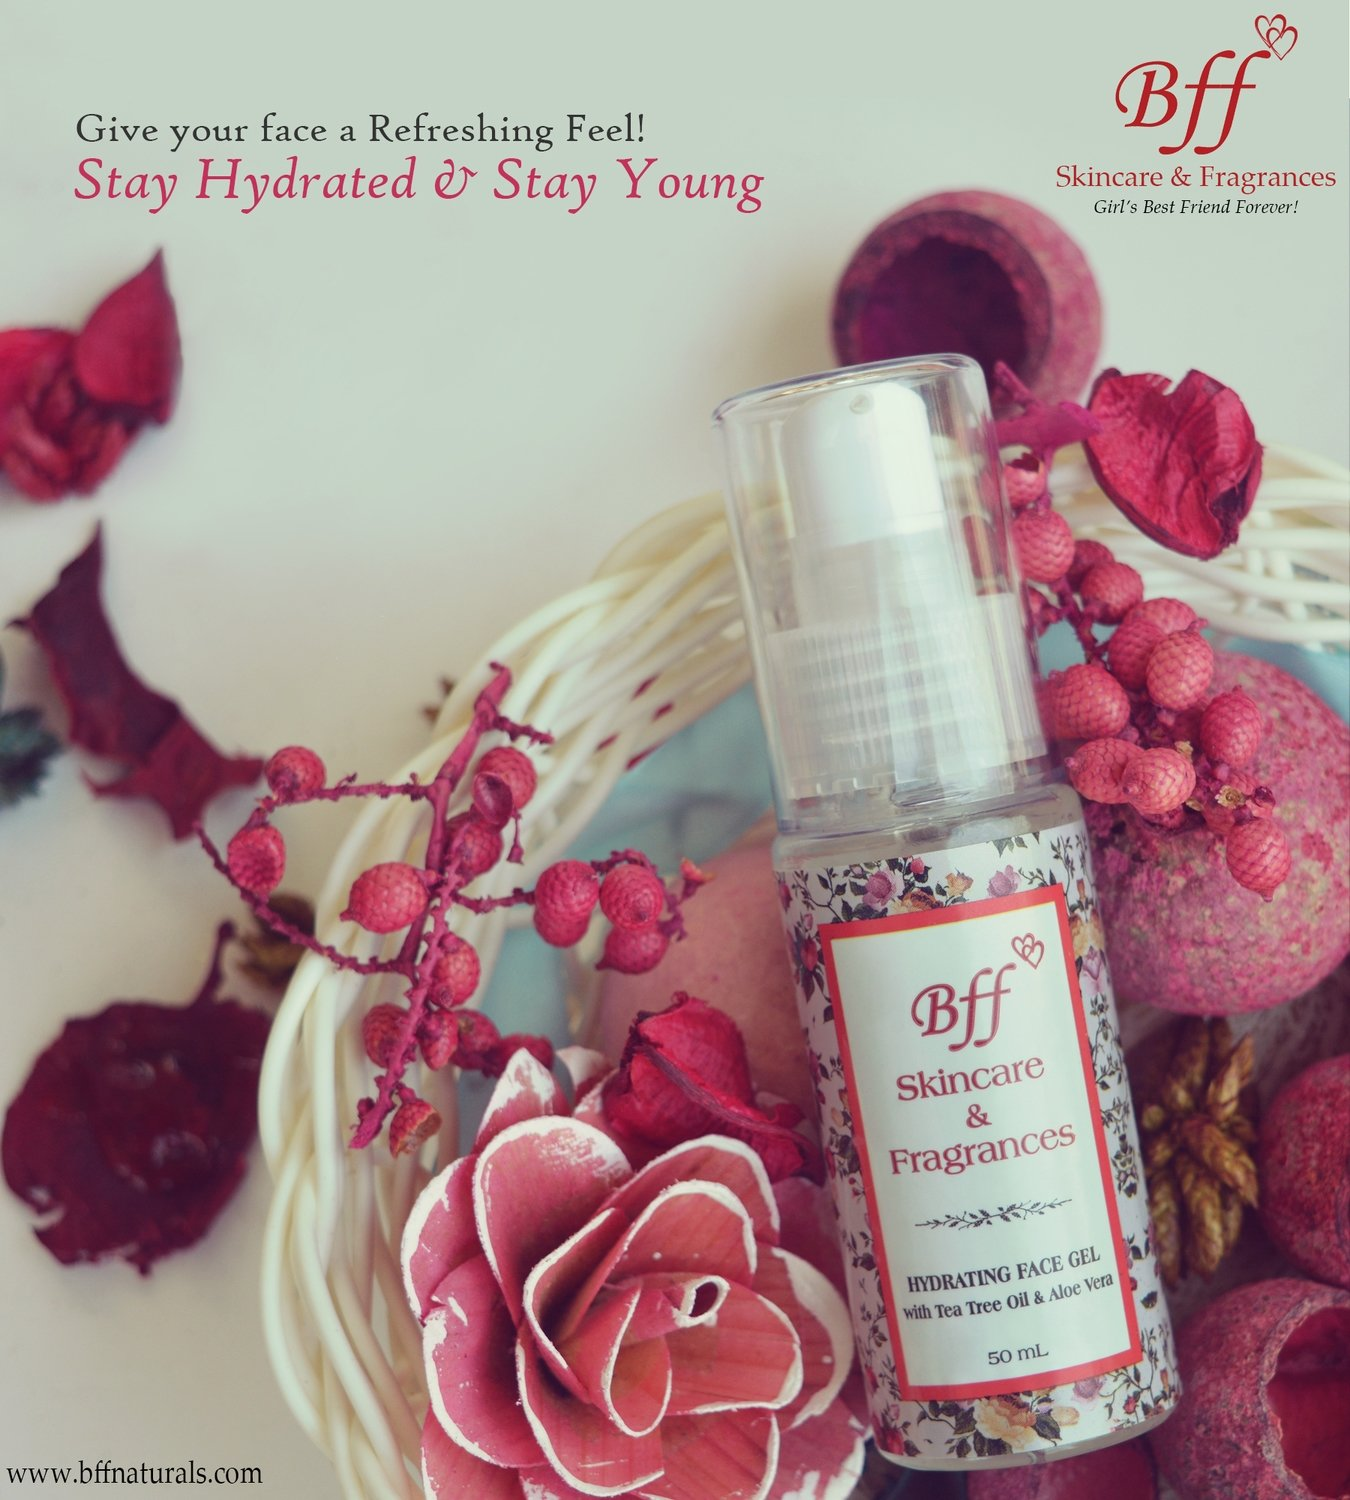 Hydrating Face Gel with Aloe Vera & tea Tree oil, for Instant Soothing & Refreshing Effect. 50 ml.